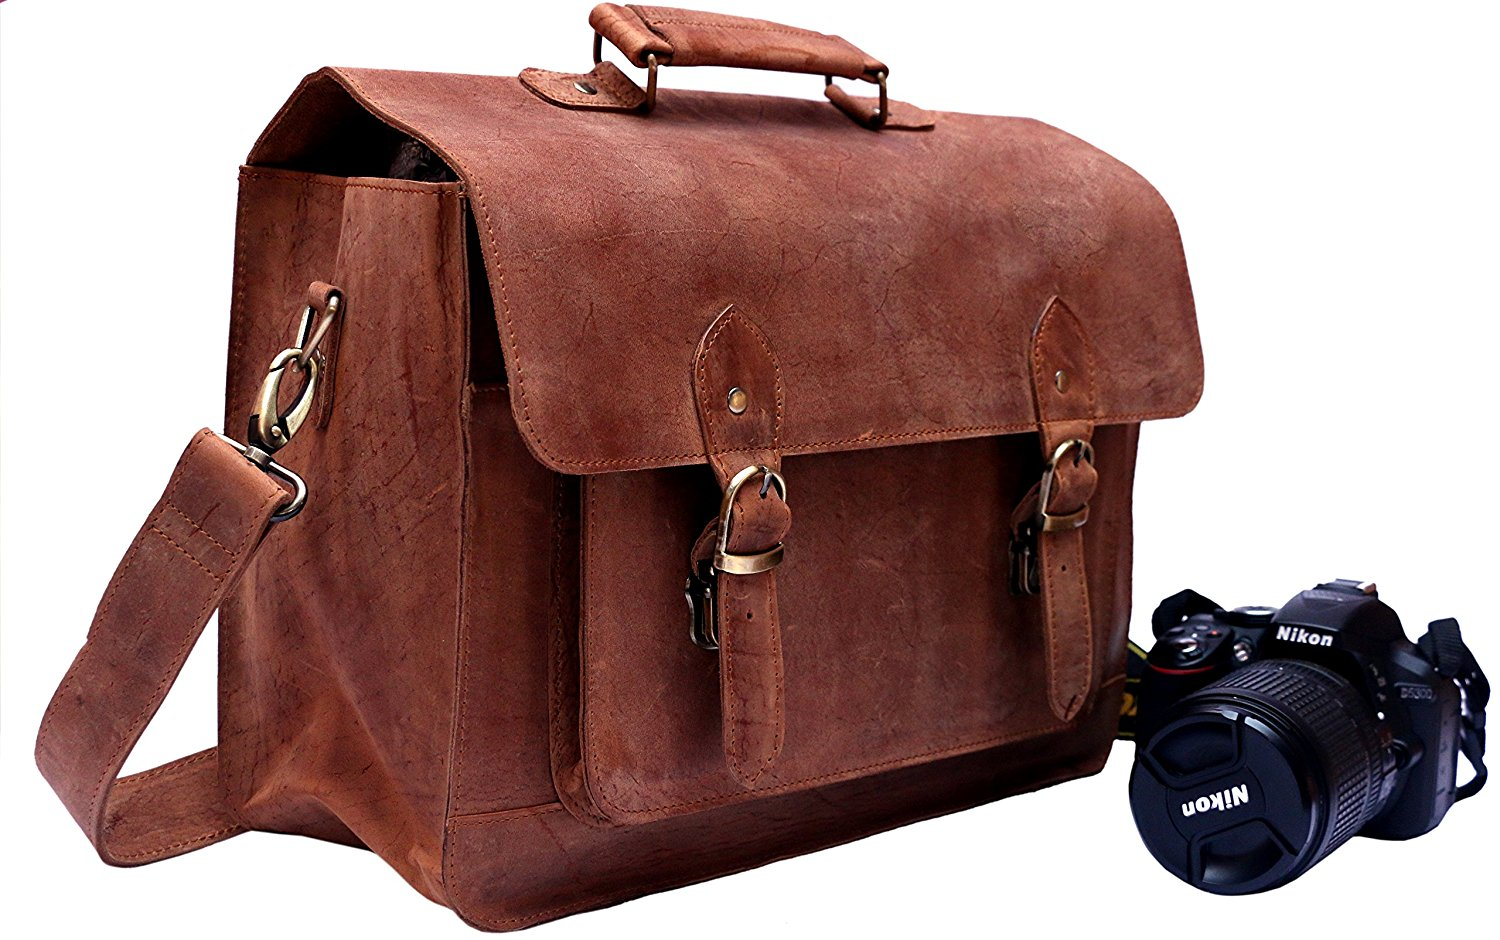 FeatherTouch Leather Handmade Vintage Style Camera Bag / Messenger bag / Camera Briefcase Camera Bag 15X10X6 Inches Brown